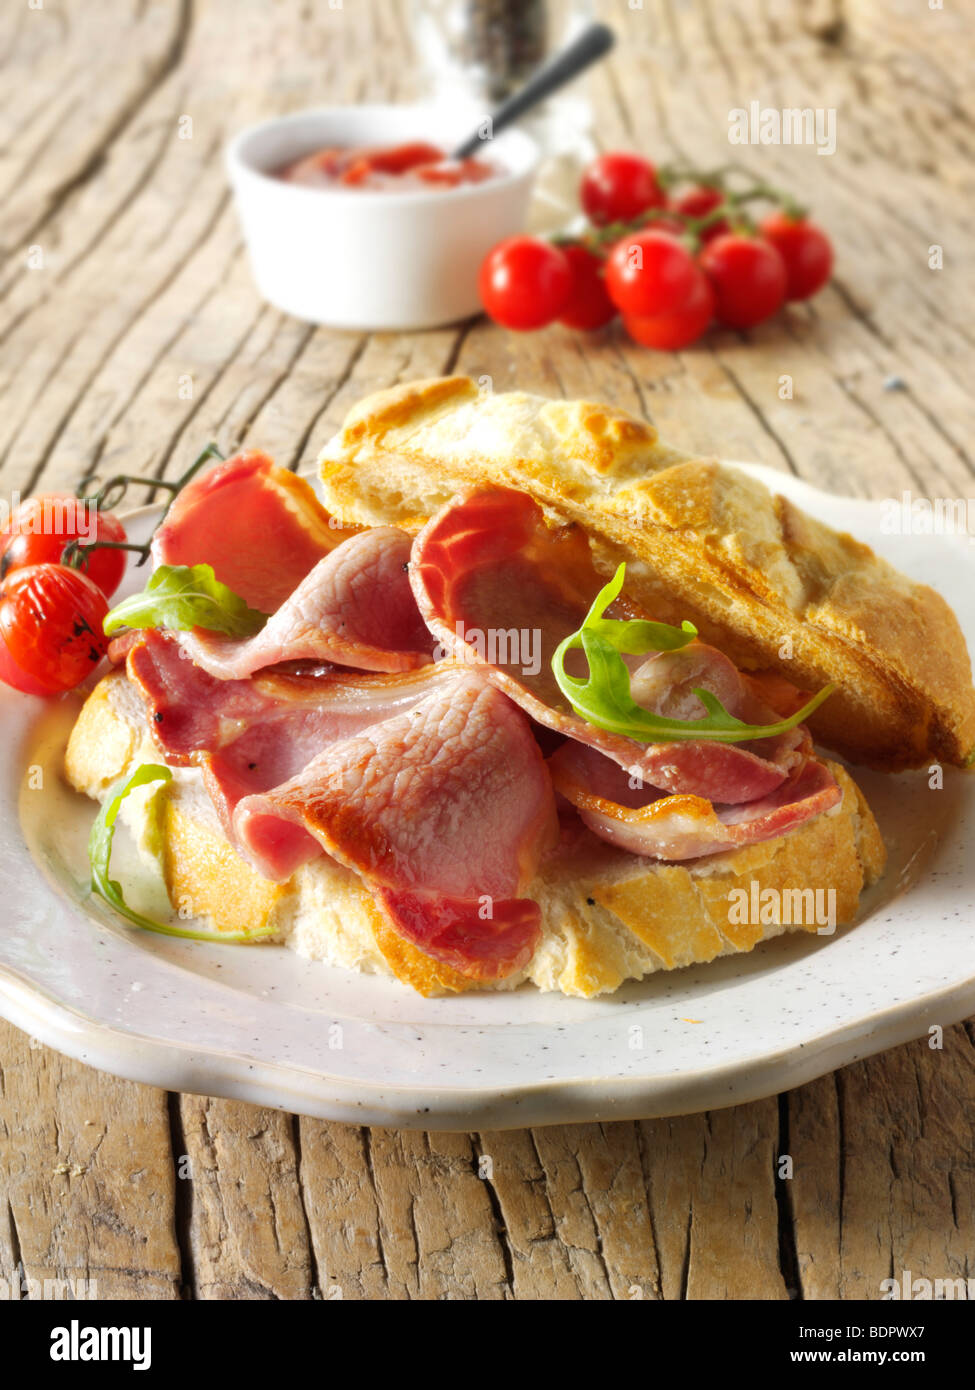 Sandwich bacon traditionnel Photo Stock